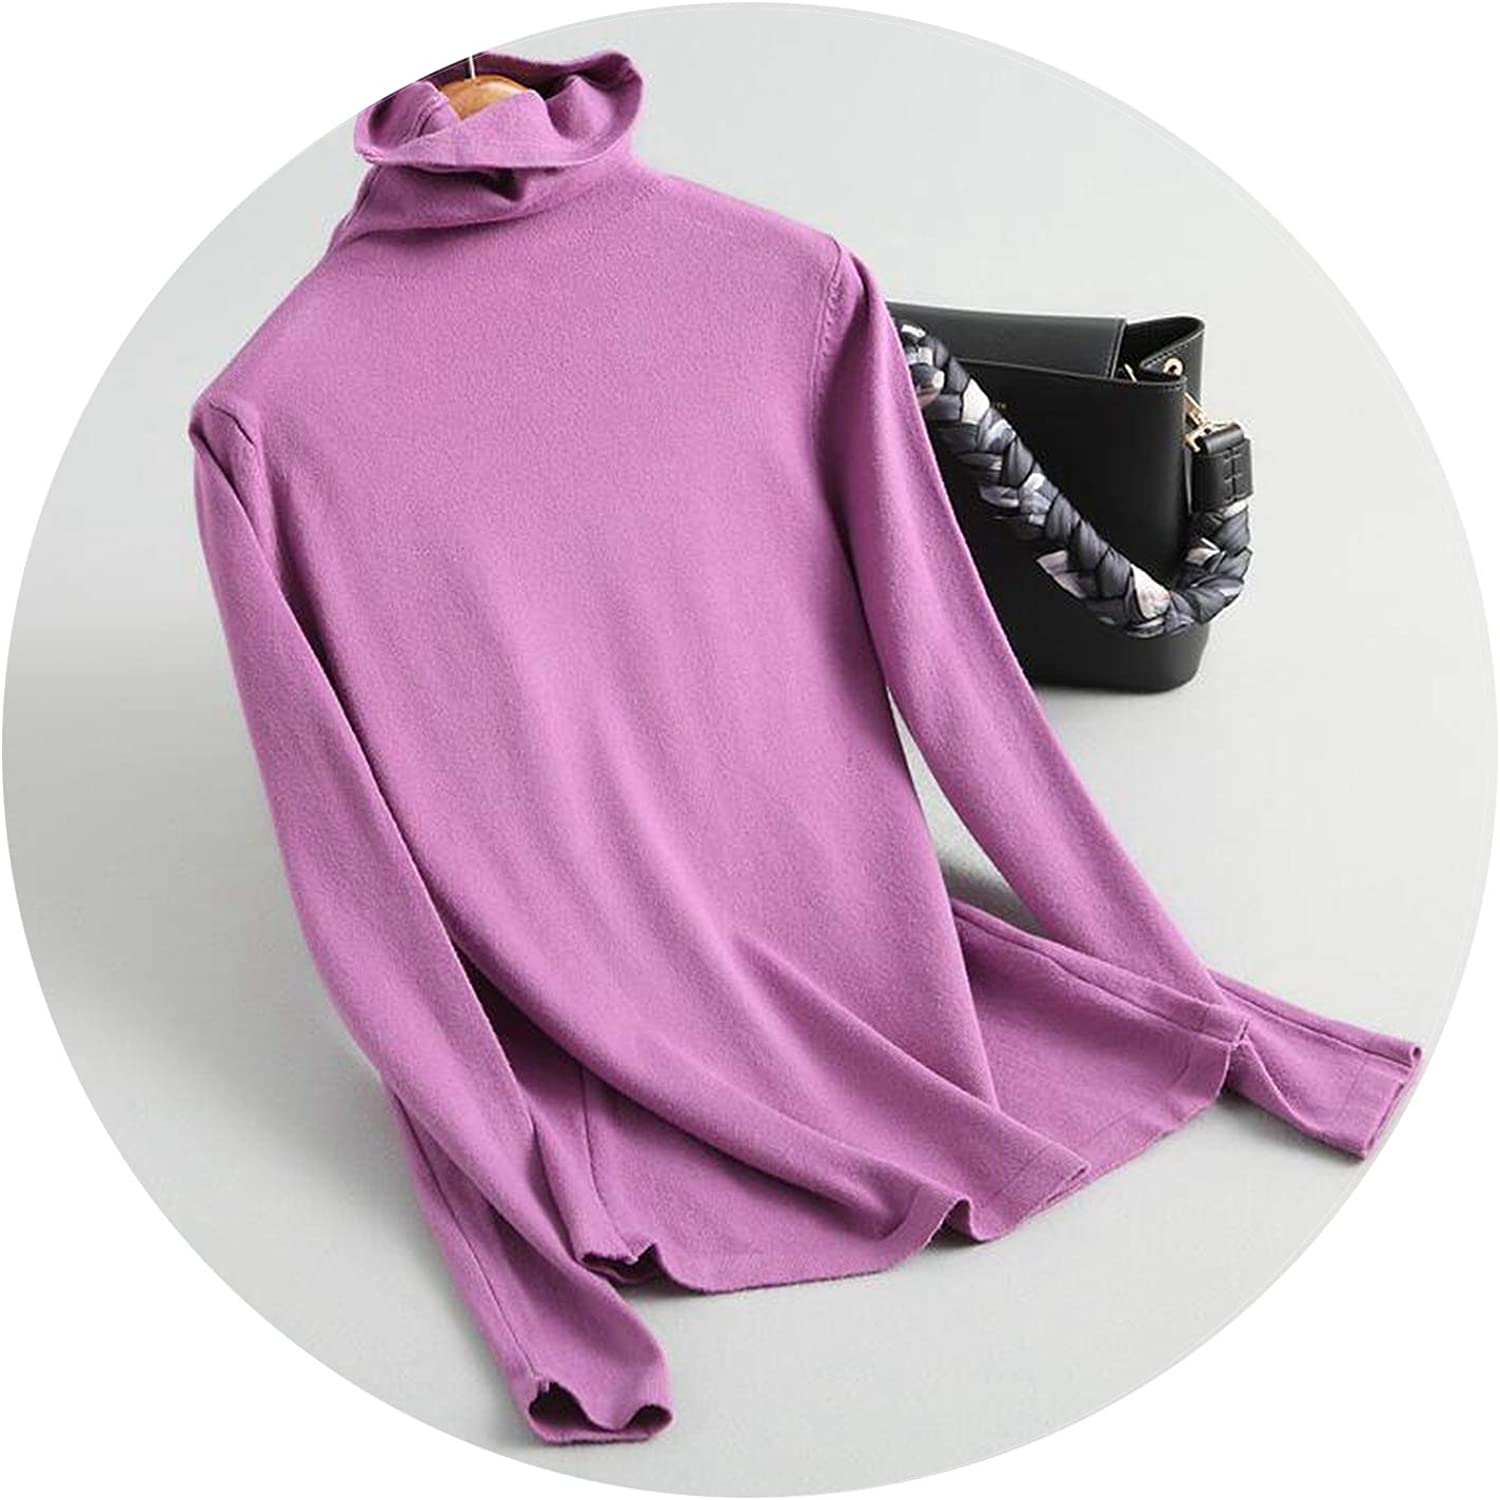 2018 Womens Sweater Casual Solid Color Turtleneck Knitted Top Sweater Pullovers